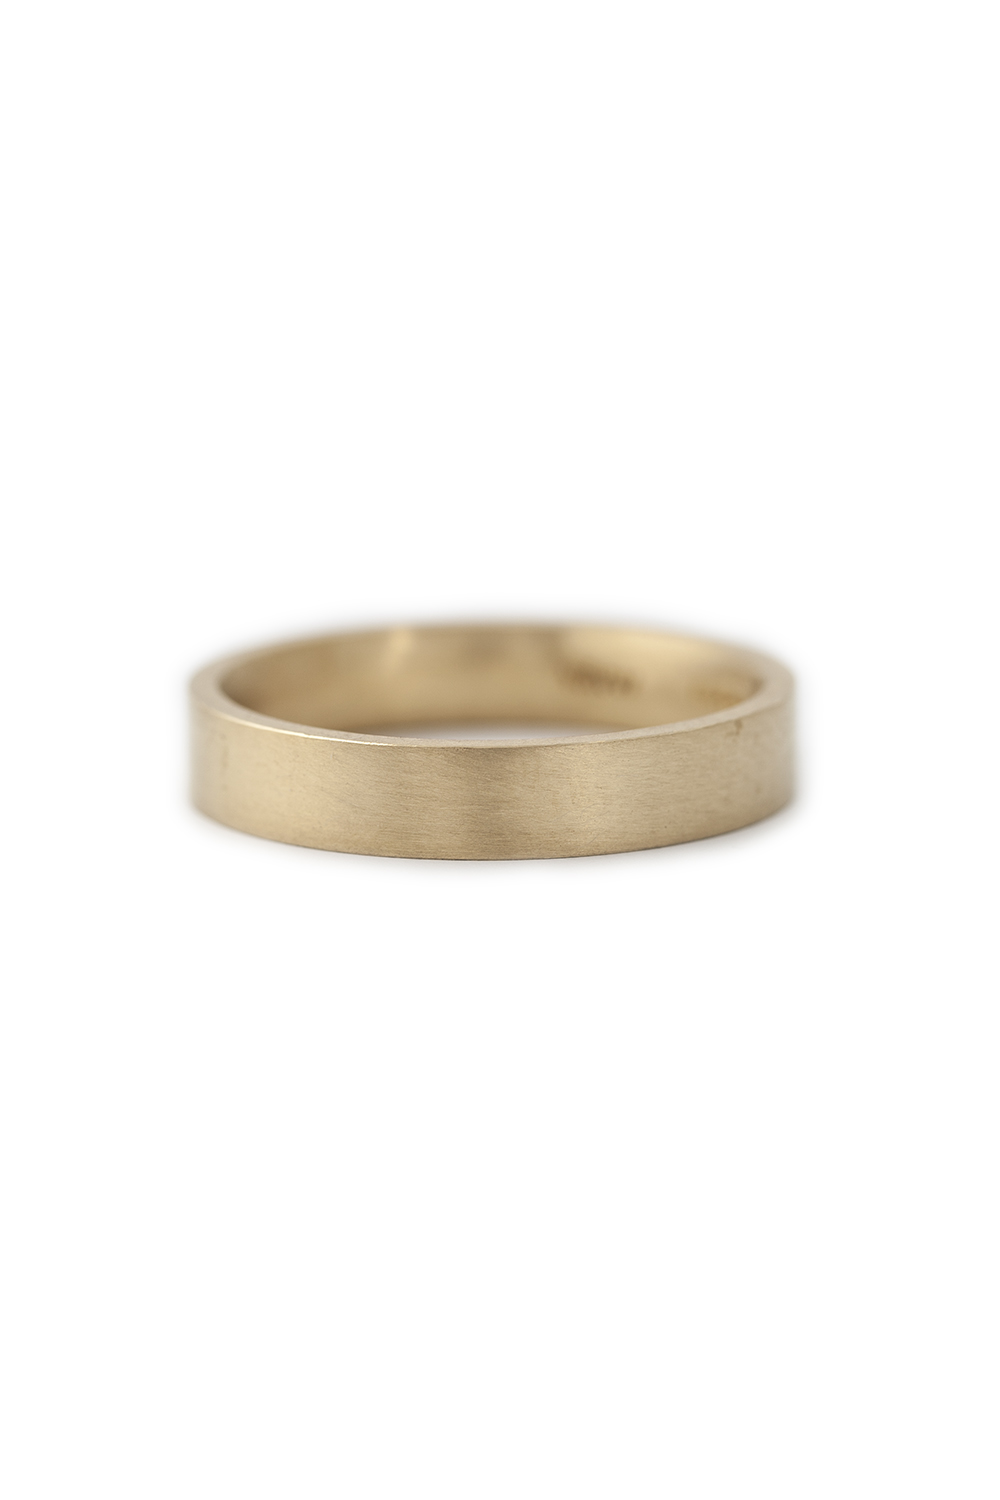 Yellow gold wide band with flat edge